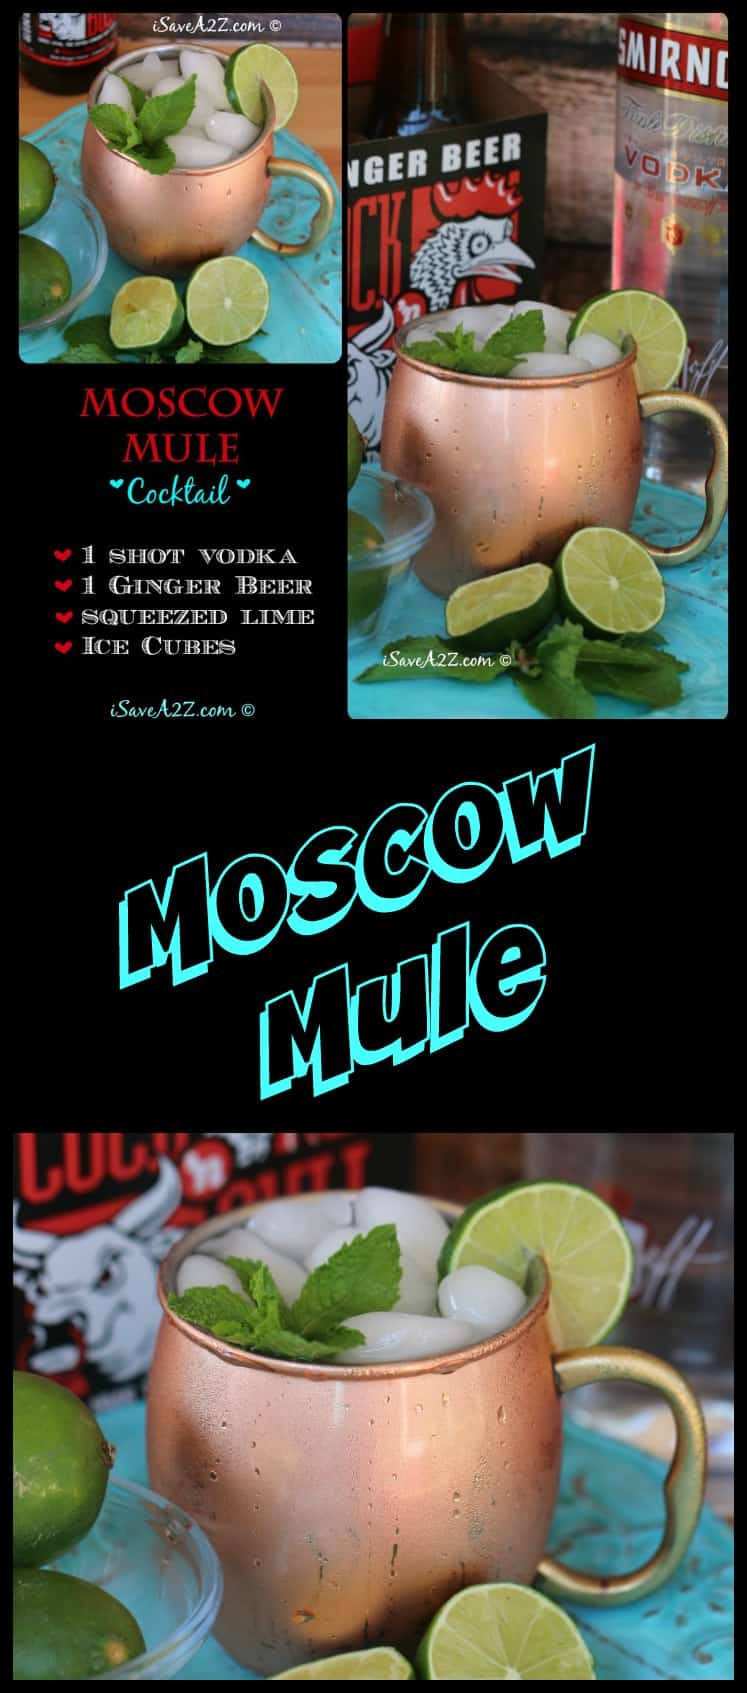 Moscow Mule Drink Recipe using my favorite Moscow Mule Mugs